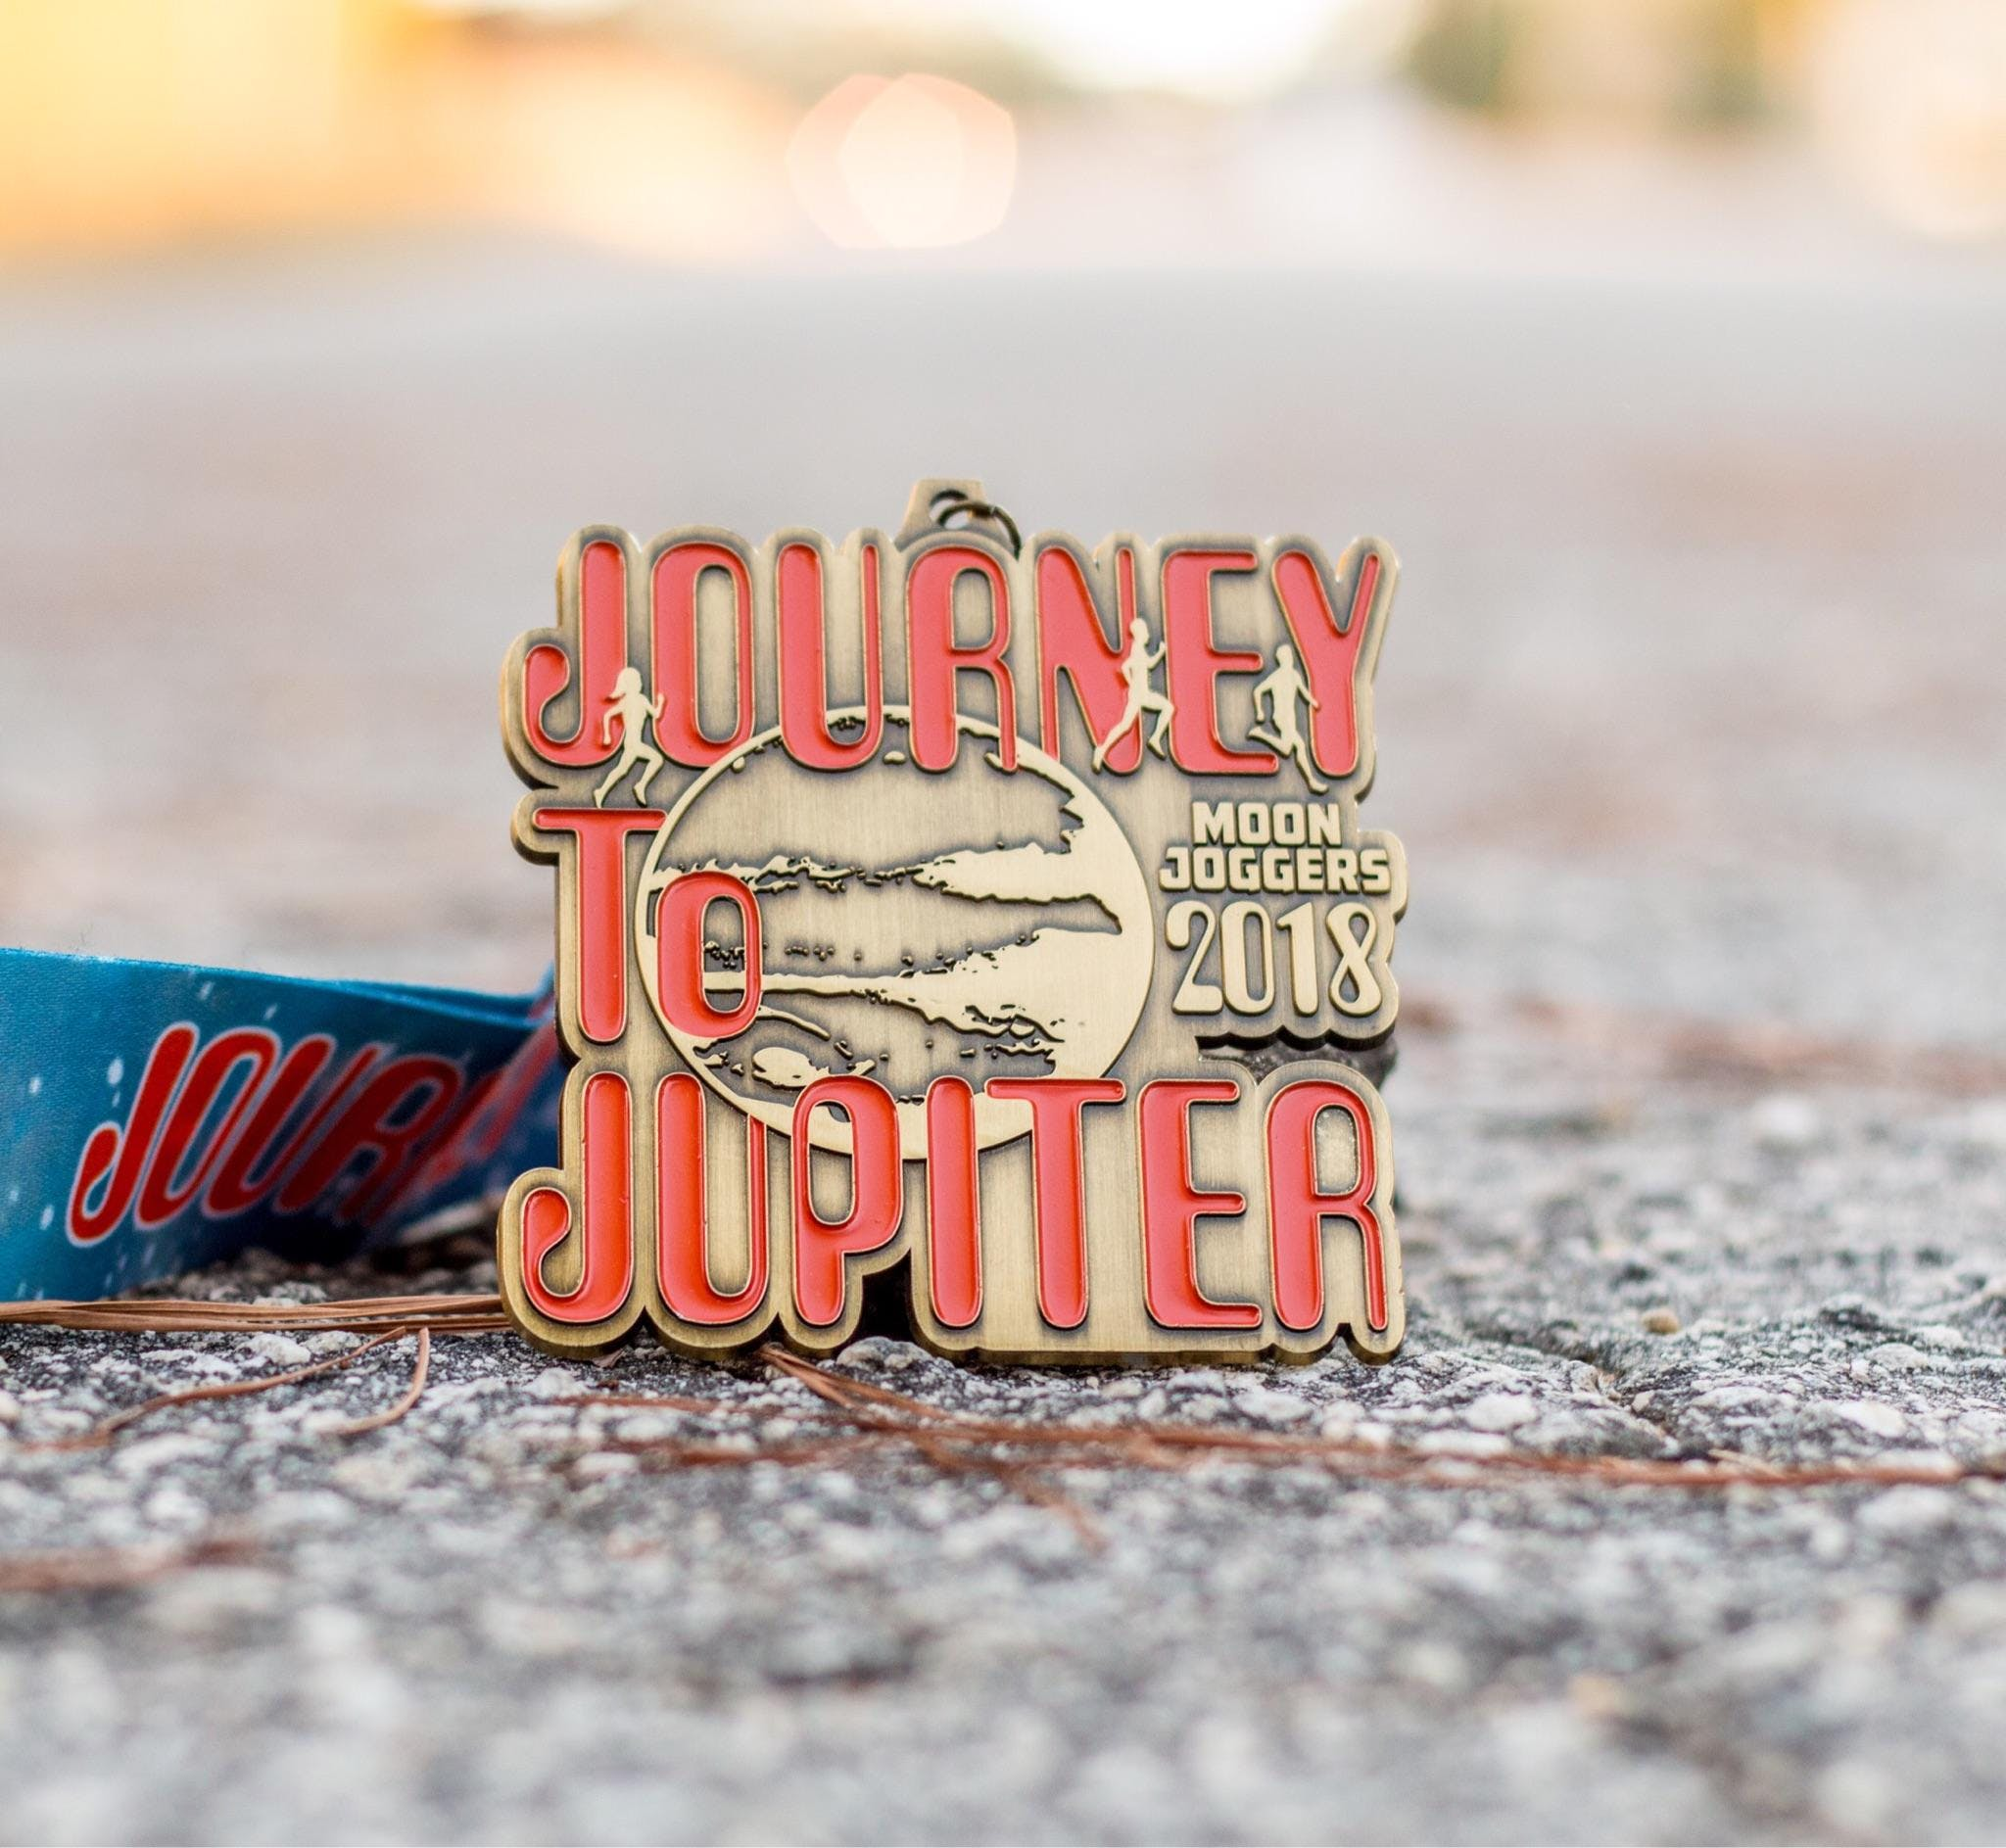 FREE SIGN UP: Journey to Jupiter Running & Walking Challenge 2018 -Phoenix